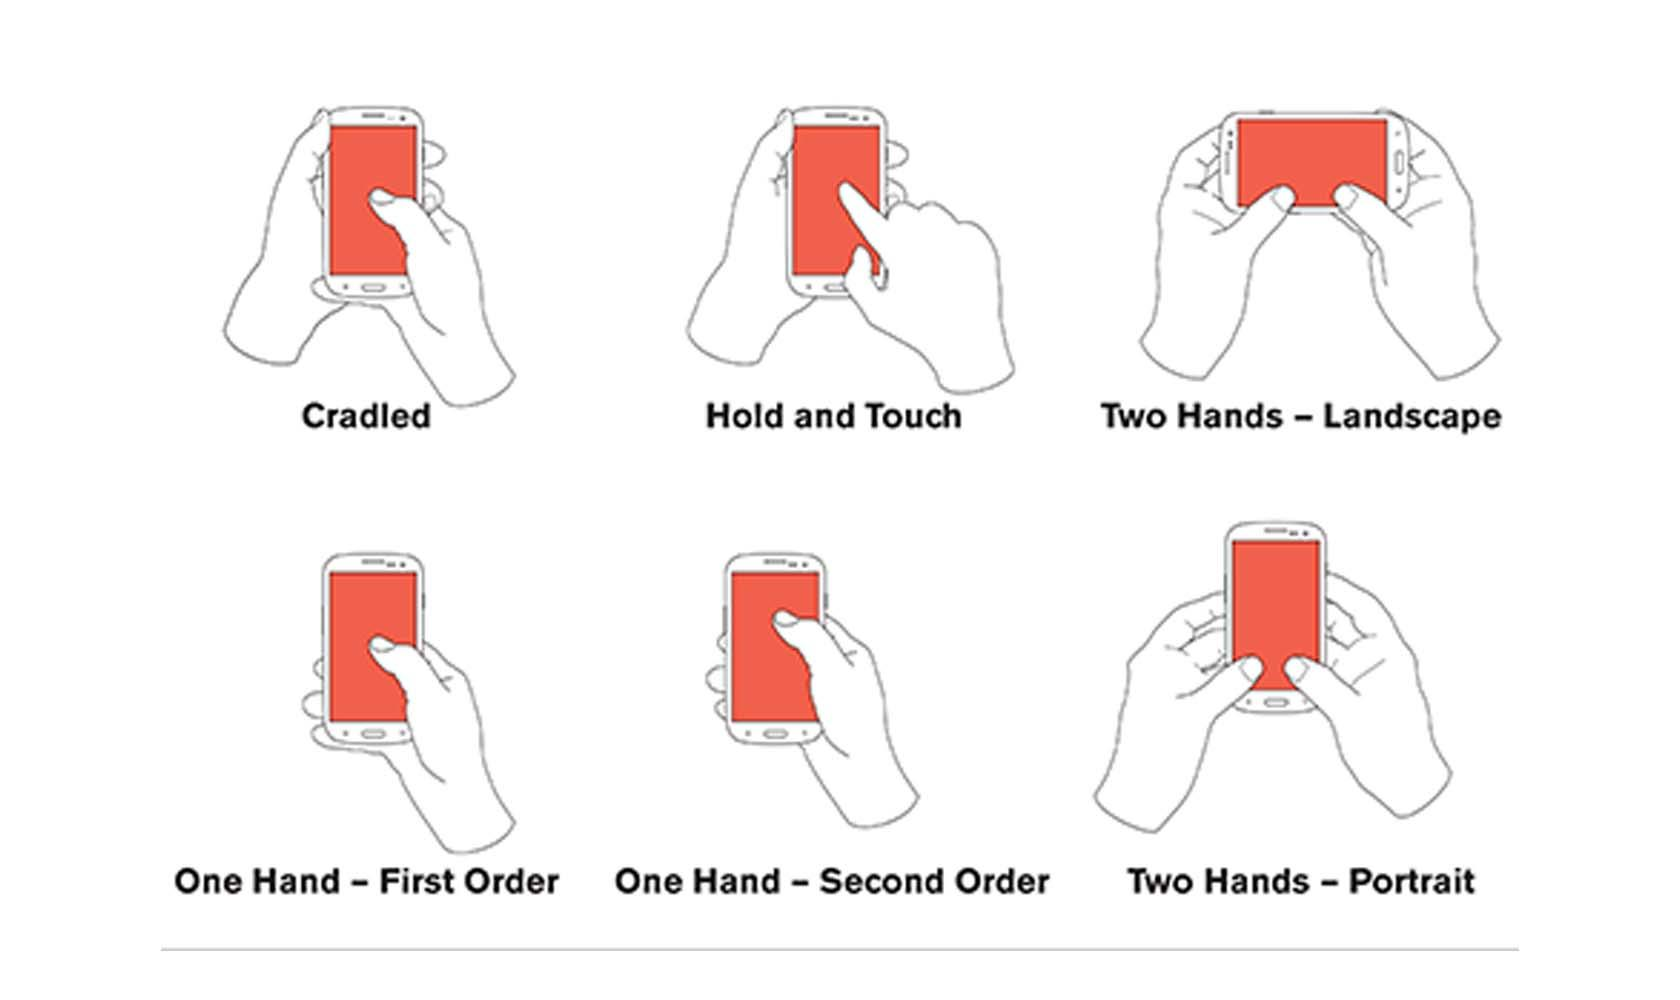 Ways users hold their phones affect mobile usability